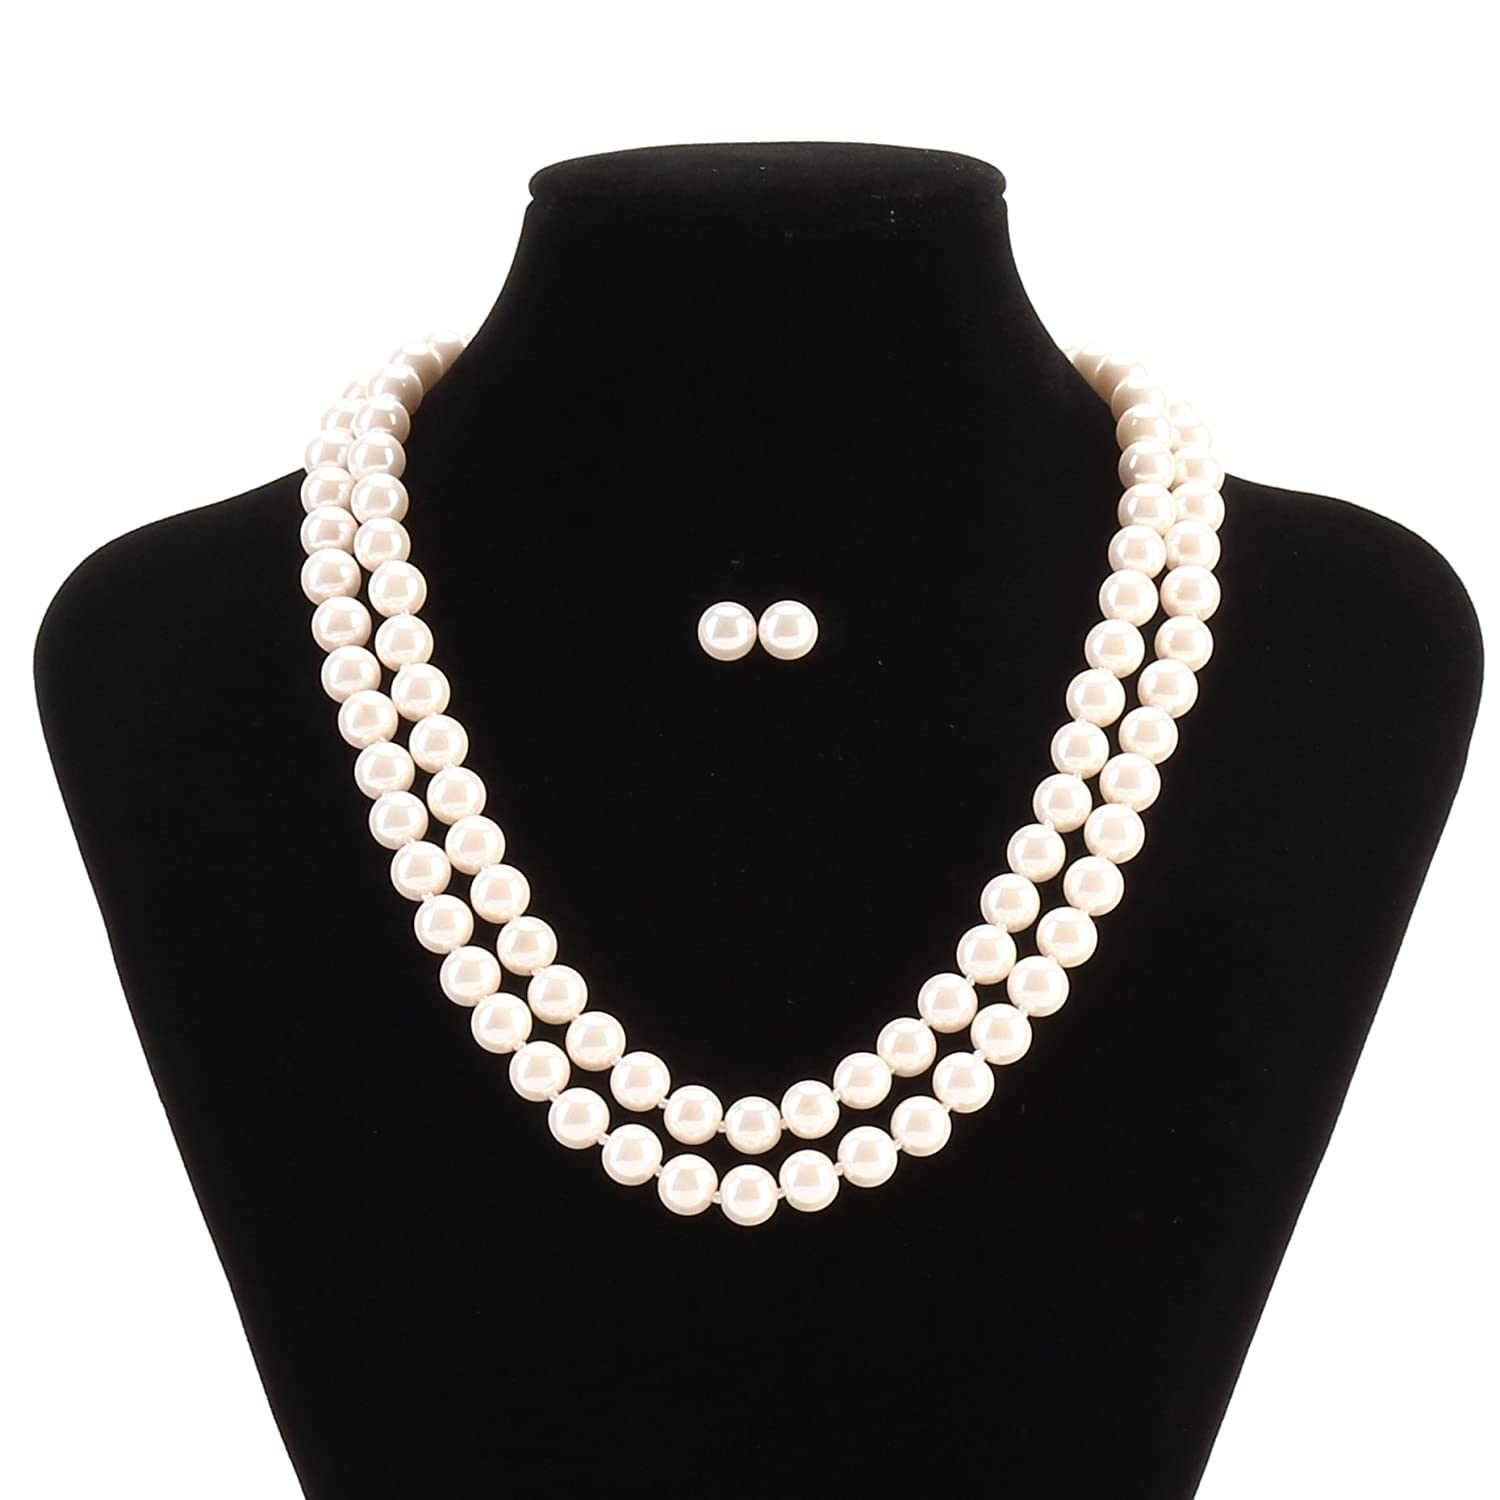 LEILE Hand Knotted Glass Imitation Pearls Necklace Bead diameter 8mm Length 18 59 inch BLDJ001